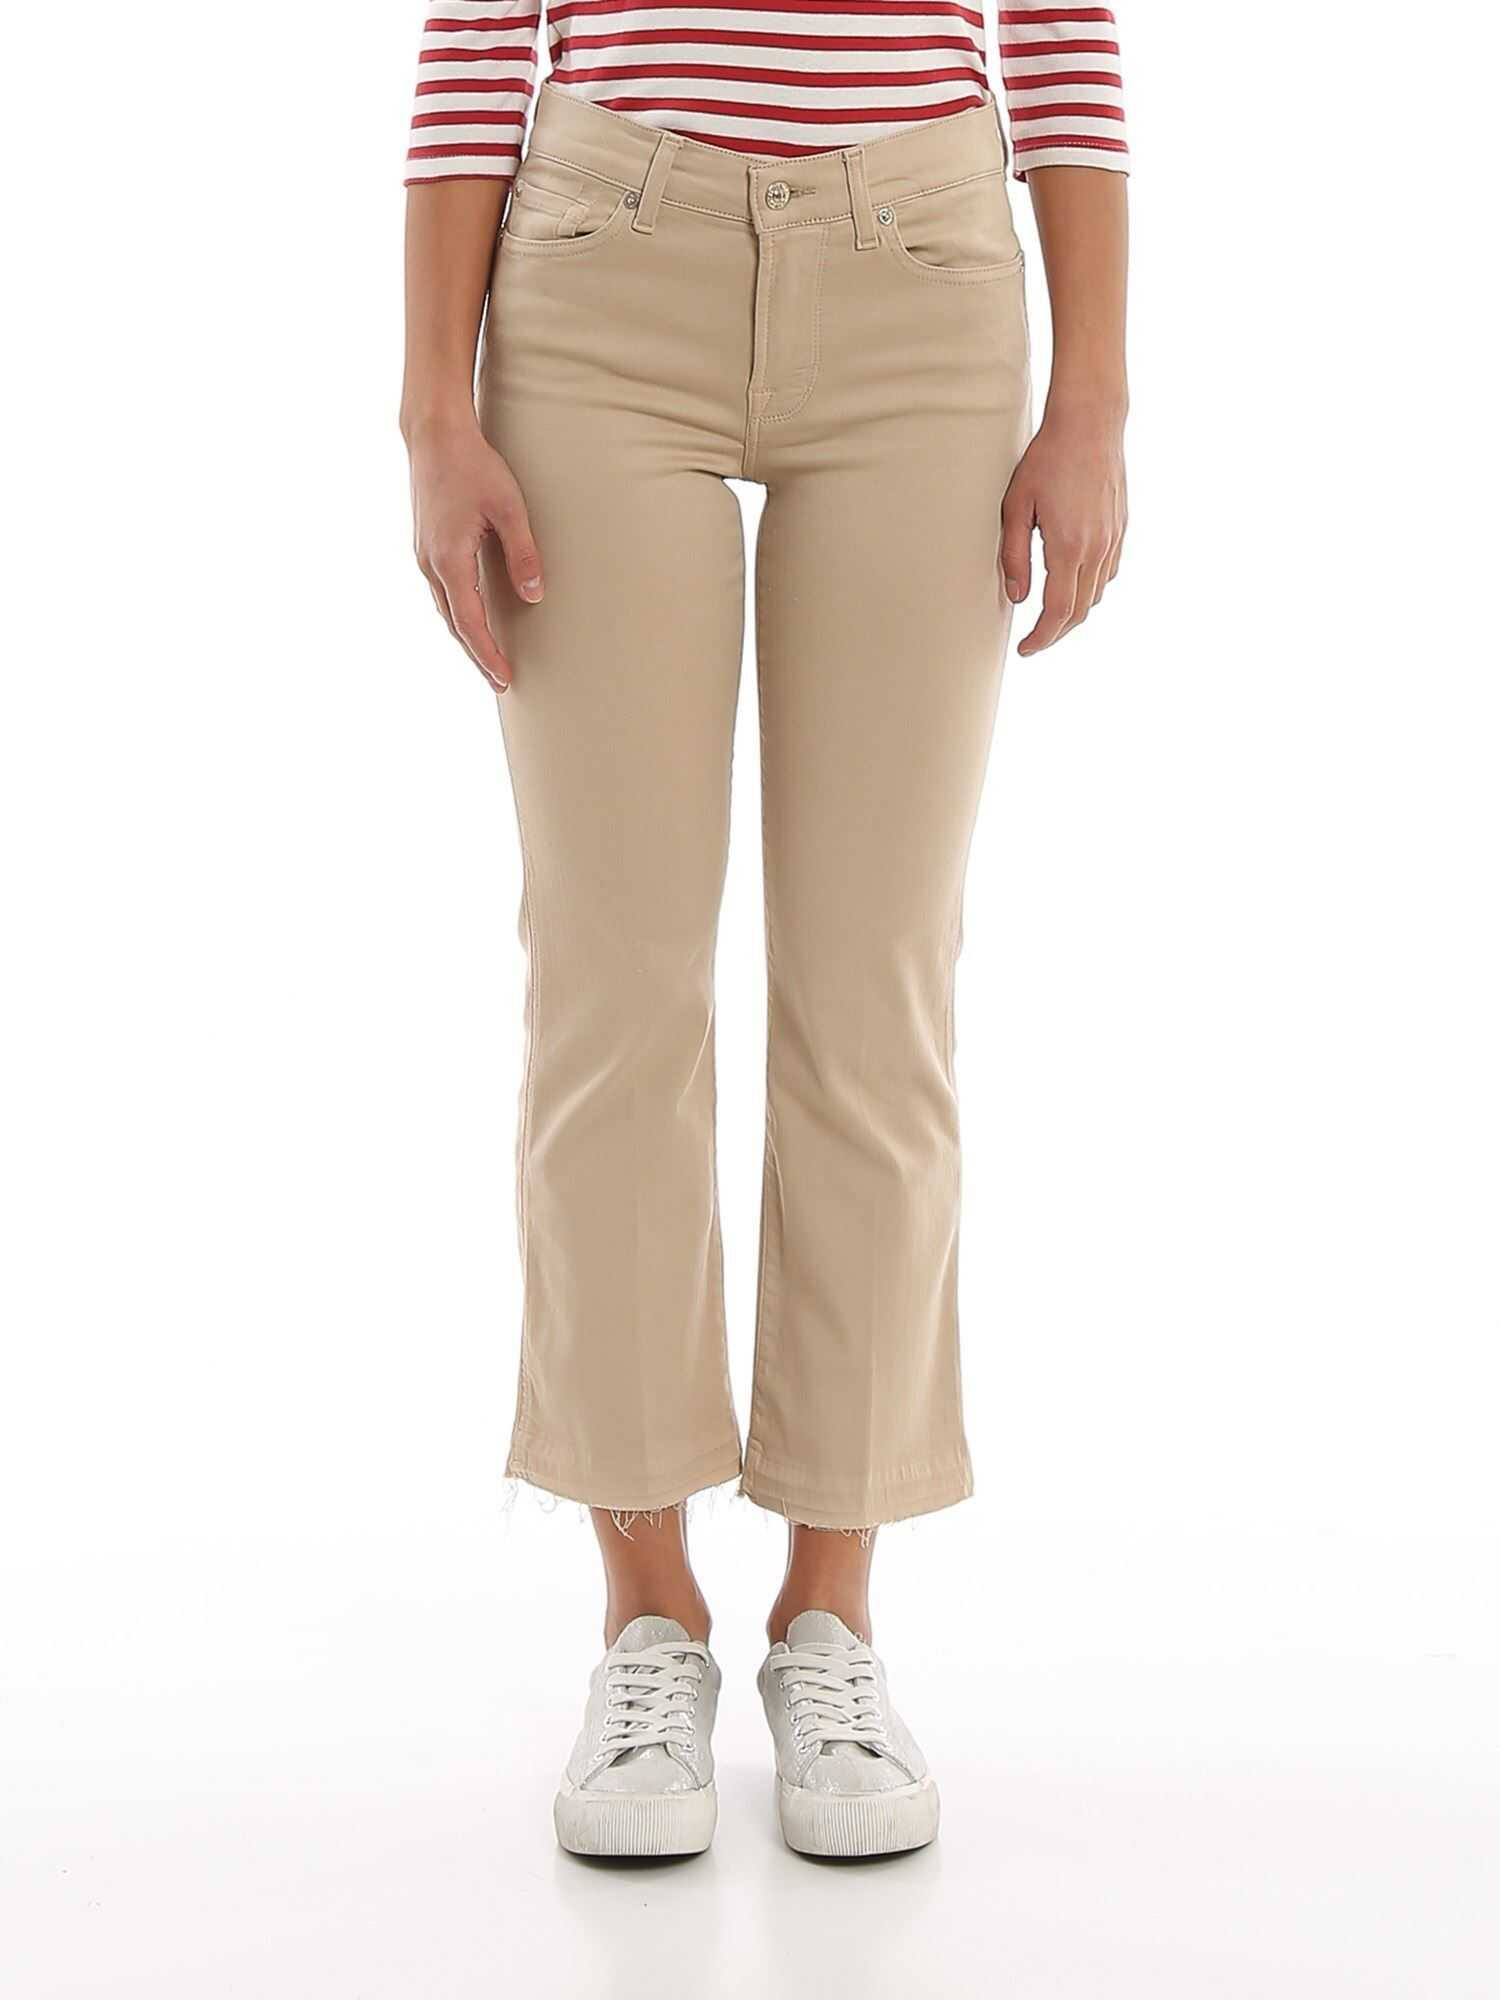 7 For All Mankind The Ankle Flare Jeans Beige